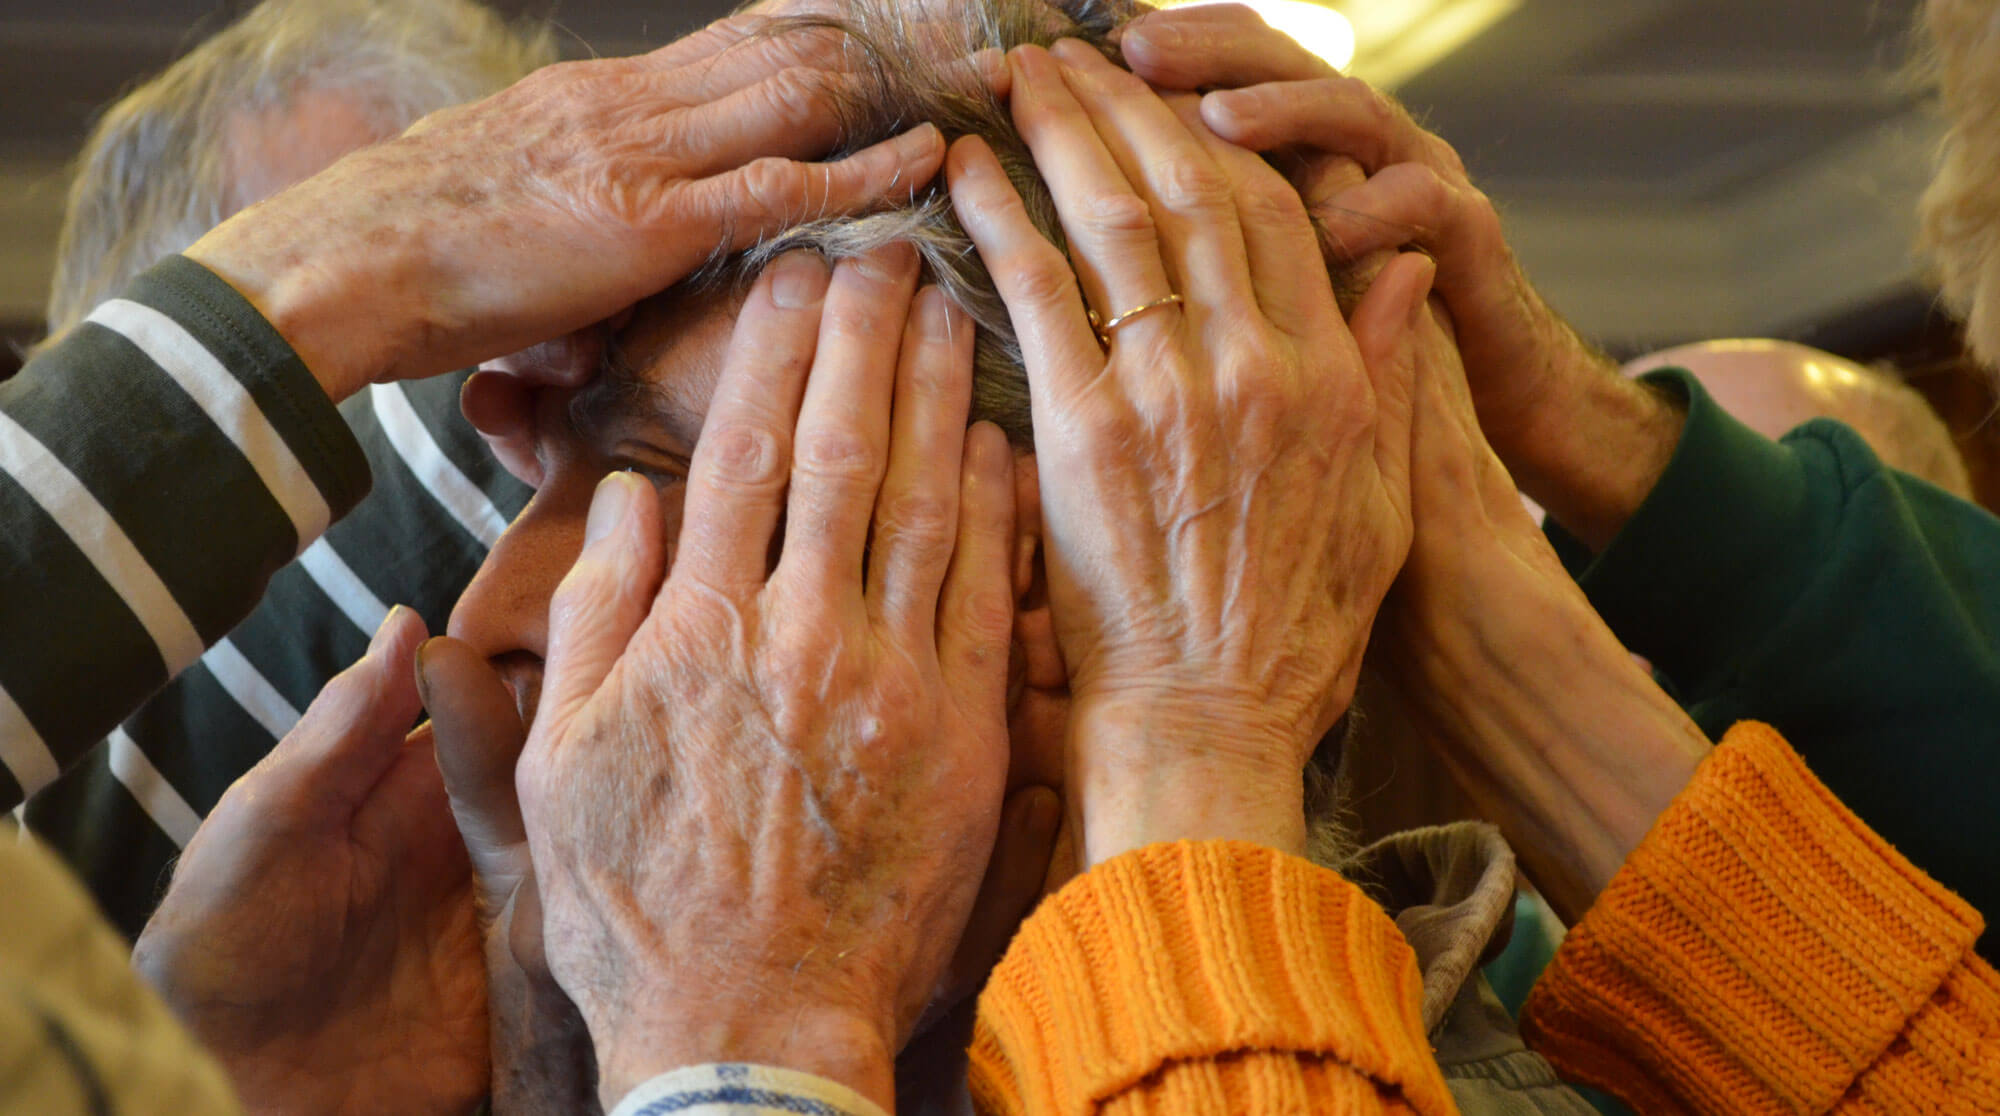 Hands covering a head for Eldership in the 21st Century